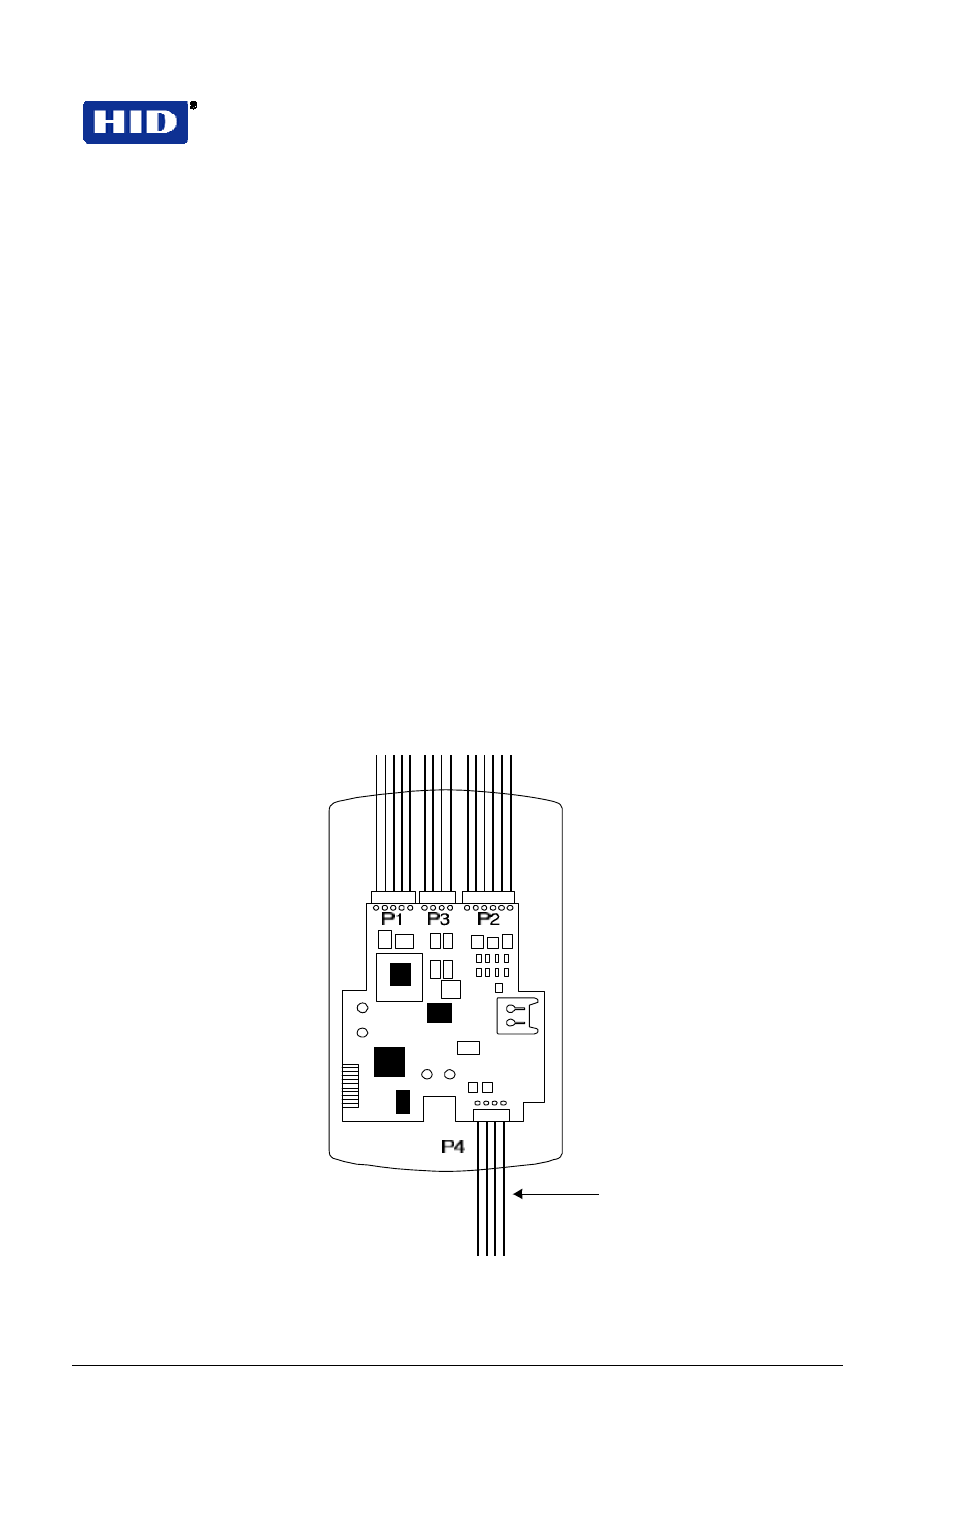 Need Help With Hid Manual Guide